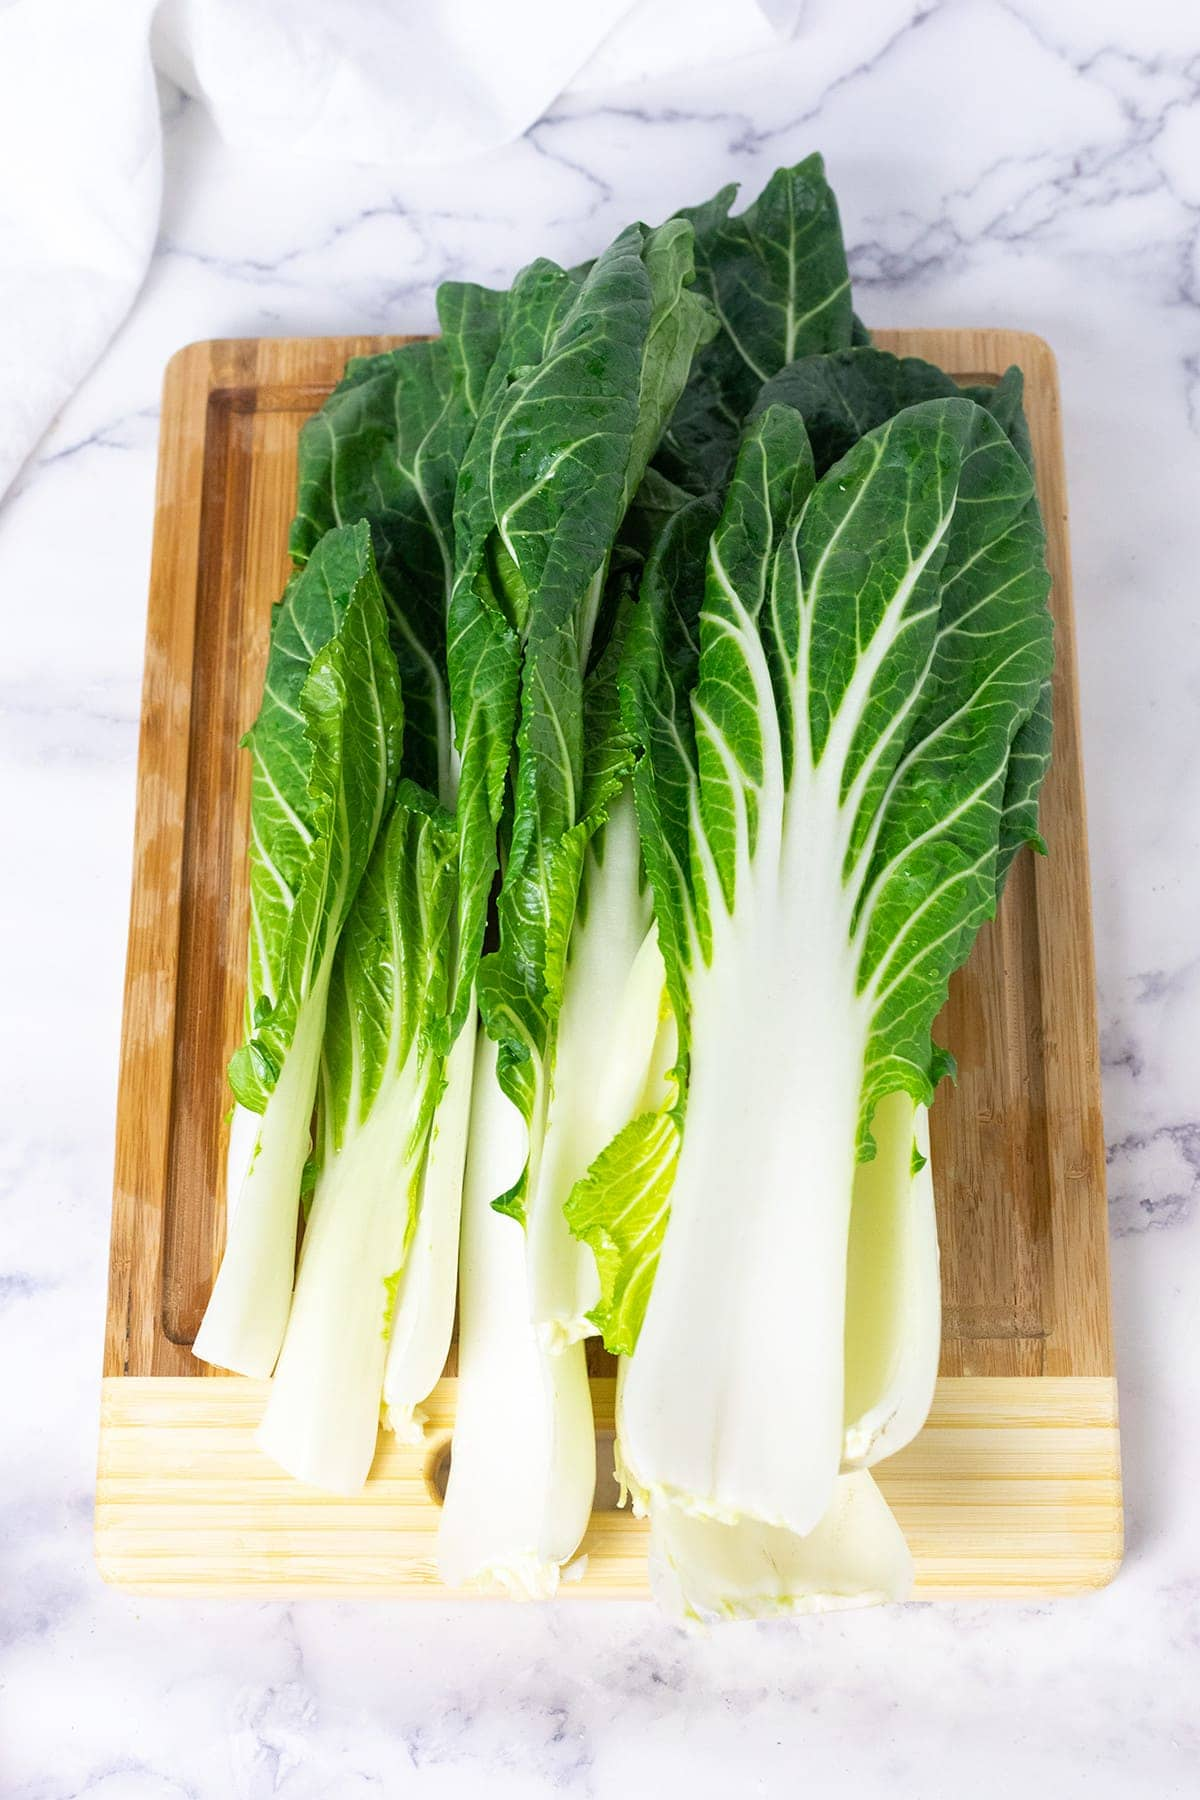 Bok choy base cut and stalks removed before washing on a cutting board on a white background